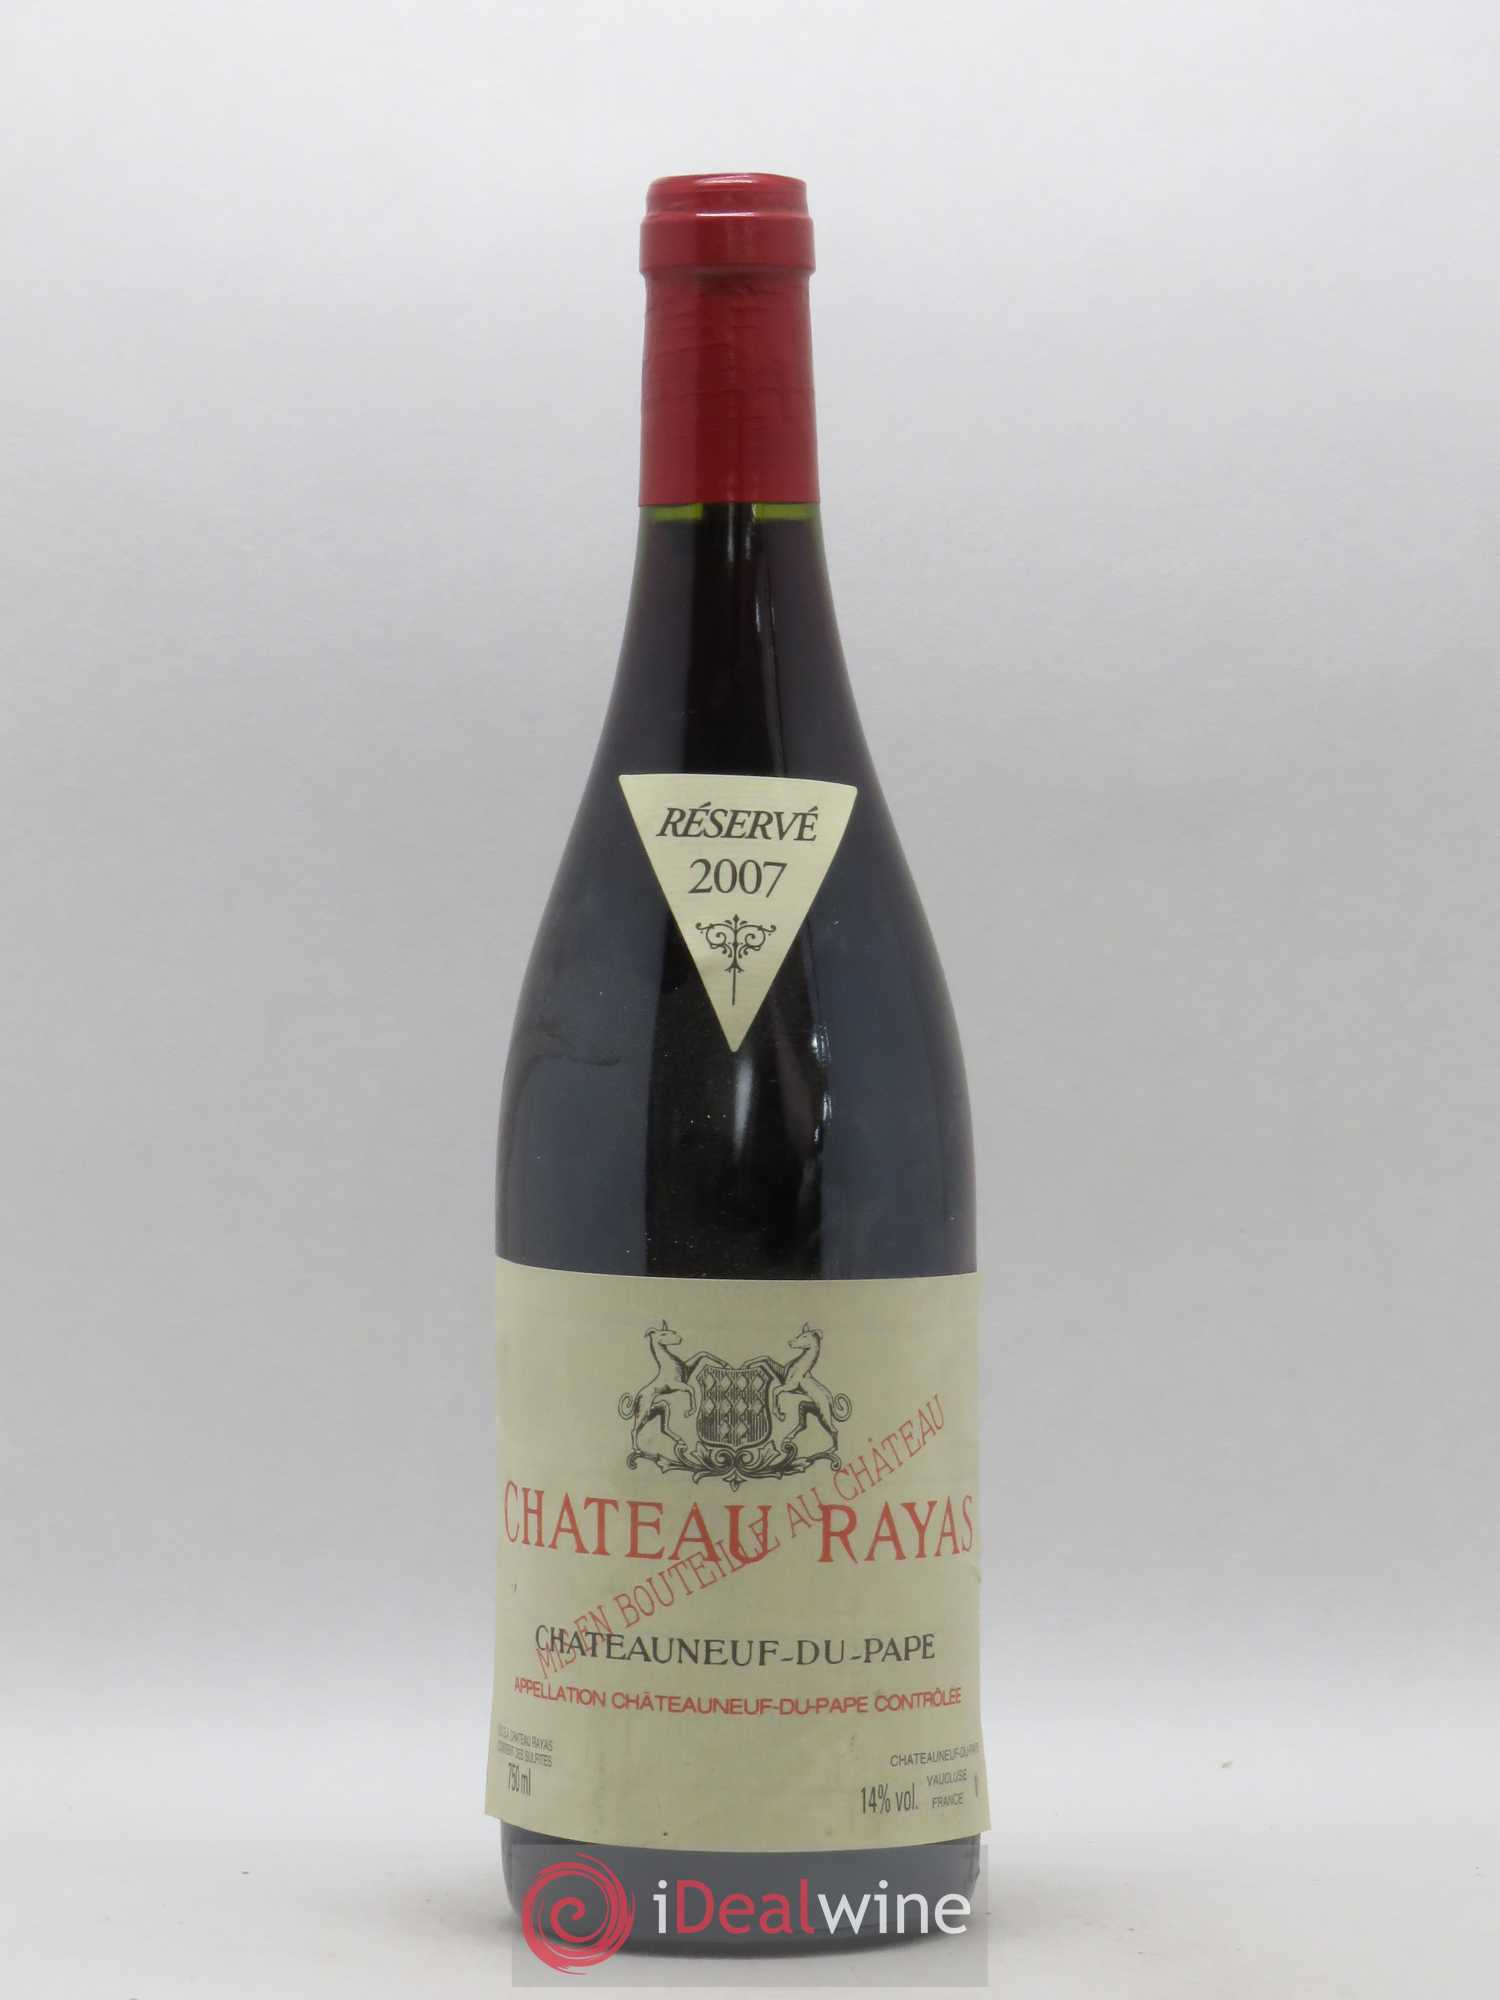 Châteauneuf-du-Pape Château Rayas Reynaud  2007 - Lot of 1 Bottle